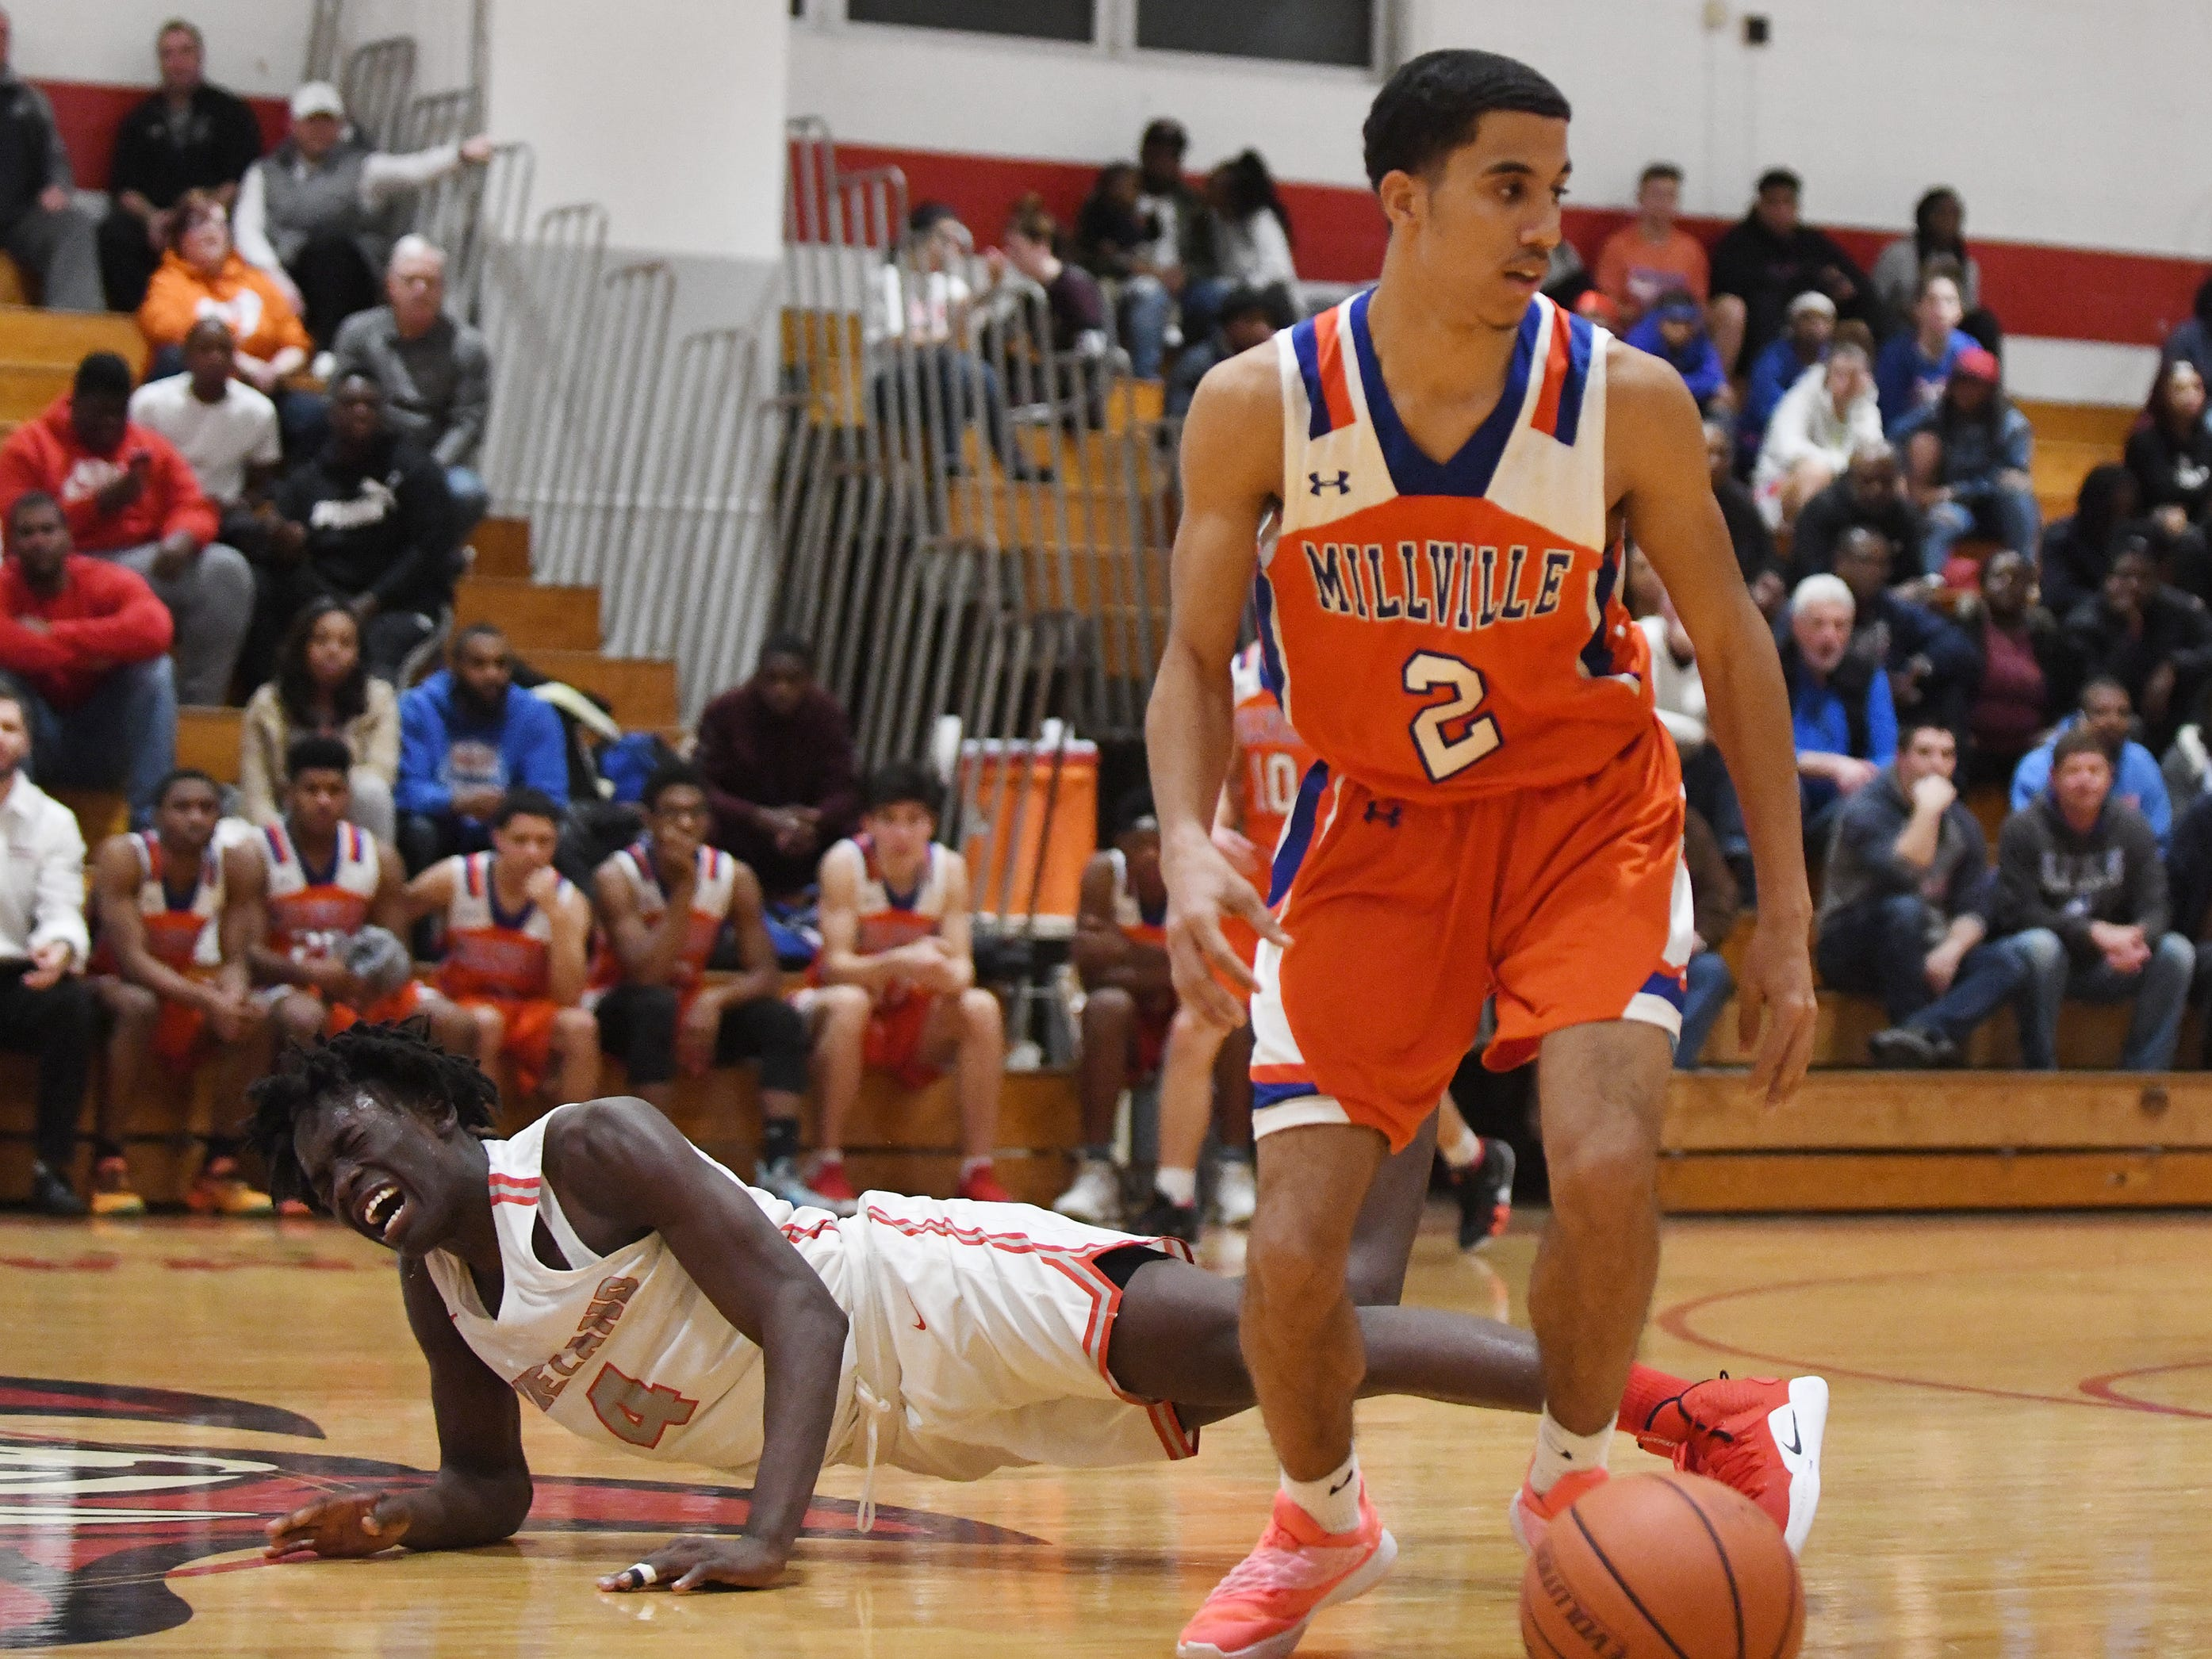 Visiting Millville defeated the Fighting Clan 70-52 during Monday's basketball game in Vineland on Feb. 4, 2019.